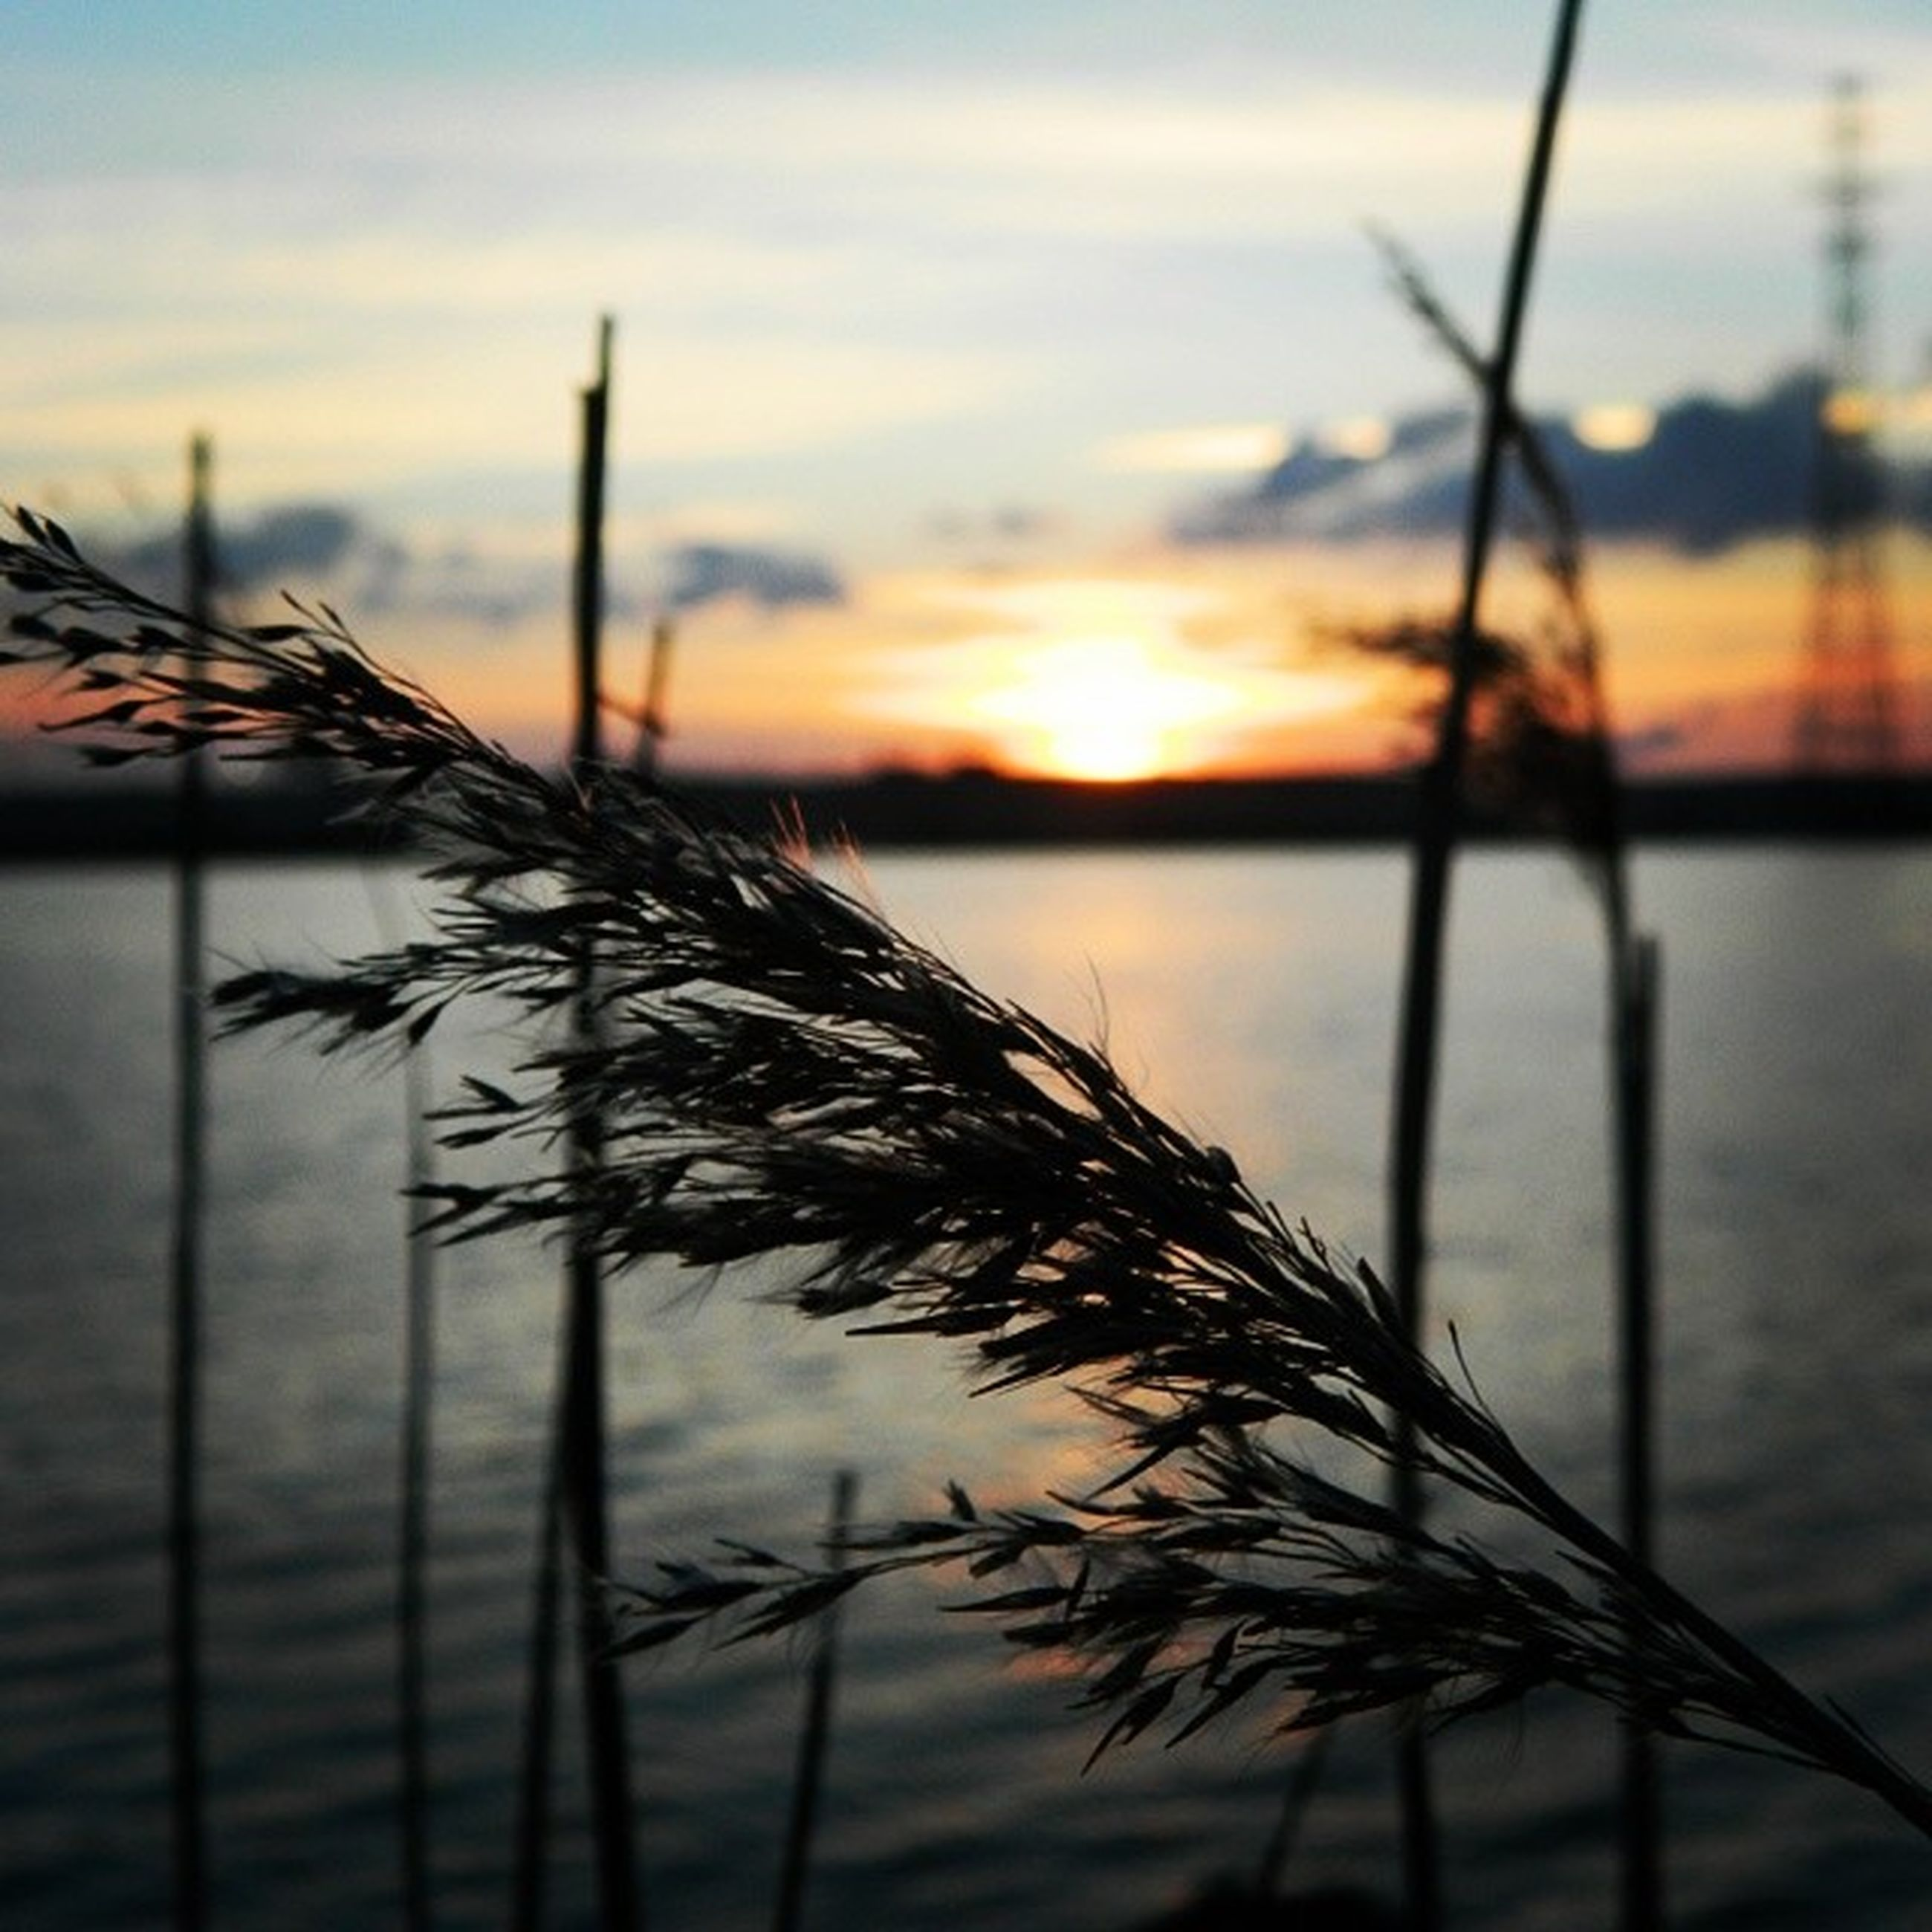 sunset, water, sky, tranquility, tranquil scene, nature, beauty in nature, focus on foreground, scenics, orange color, plant, silhouette, sea, growth, stem, lake, idyllic, close-up, grass, reflection